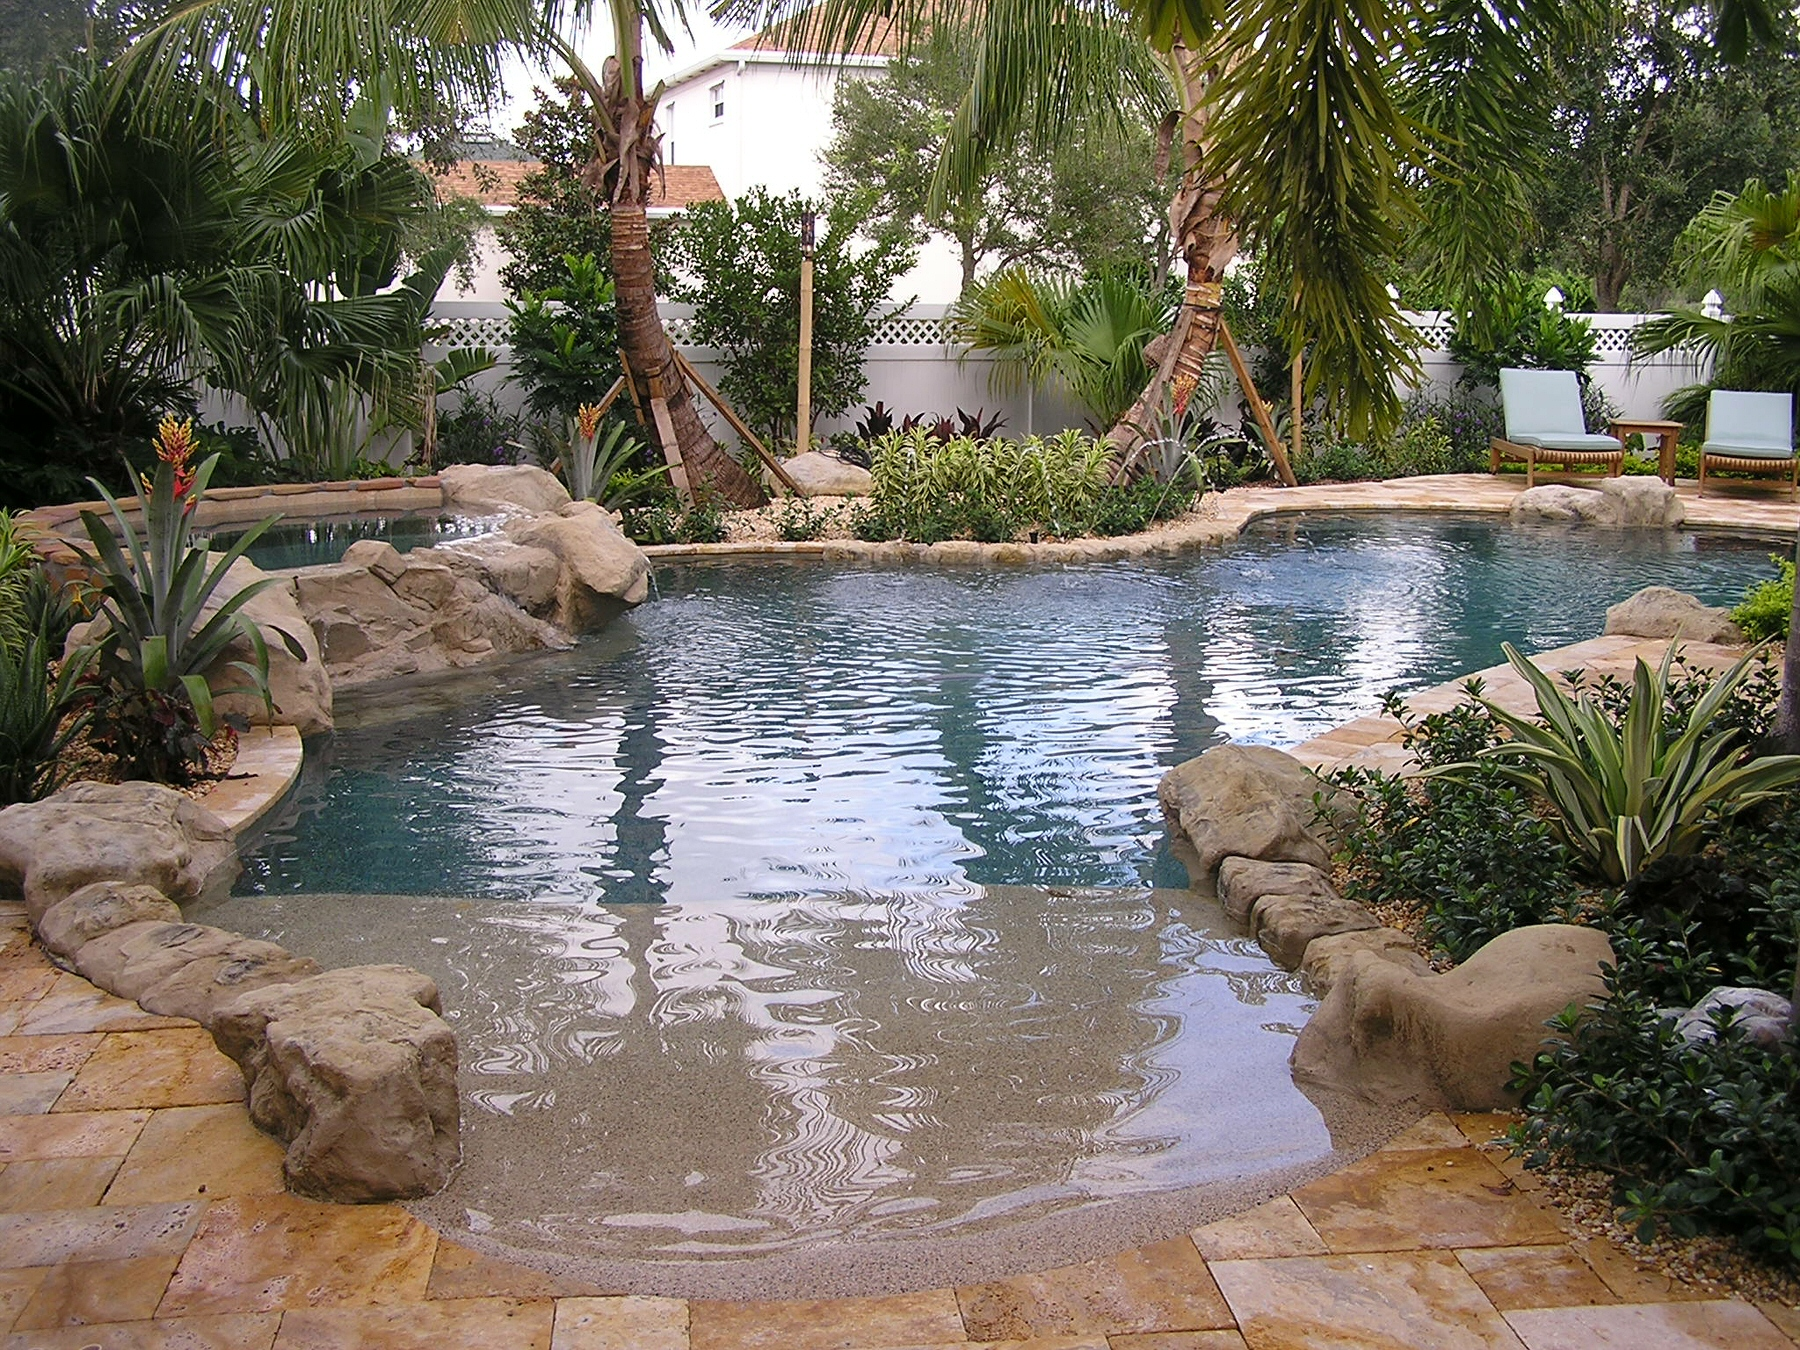 rhr pools of jupiter fl natural florida pool with rock features and beach entry